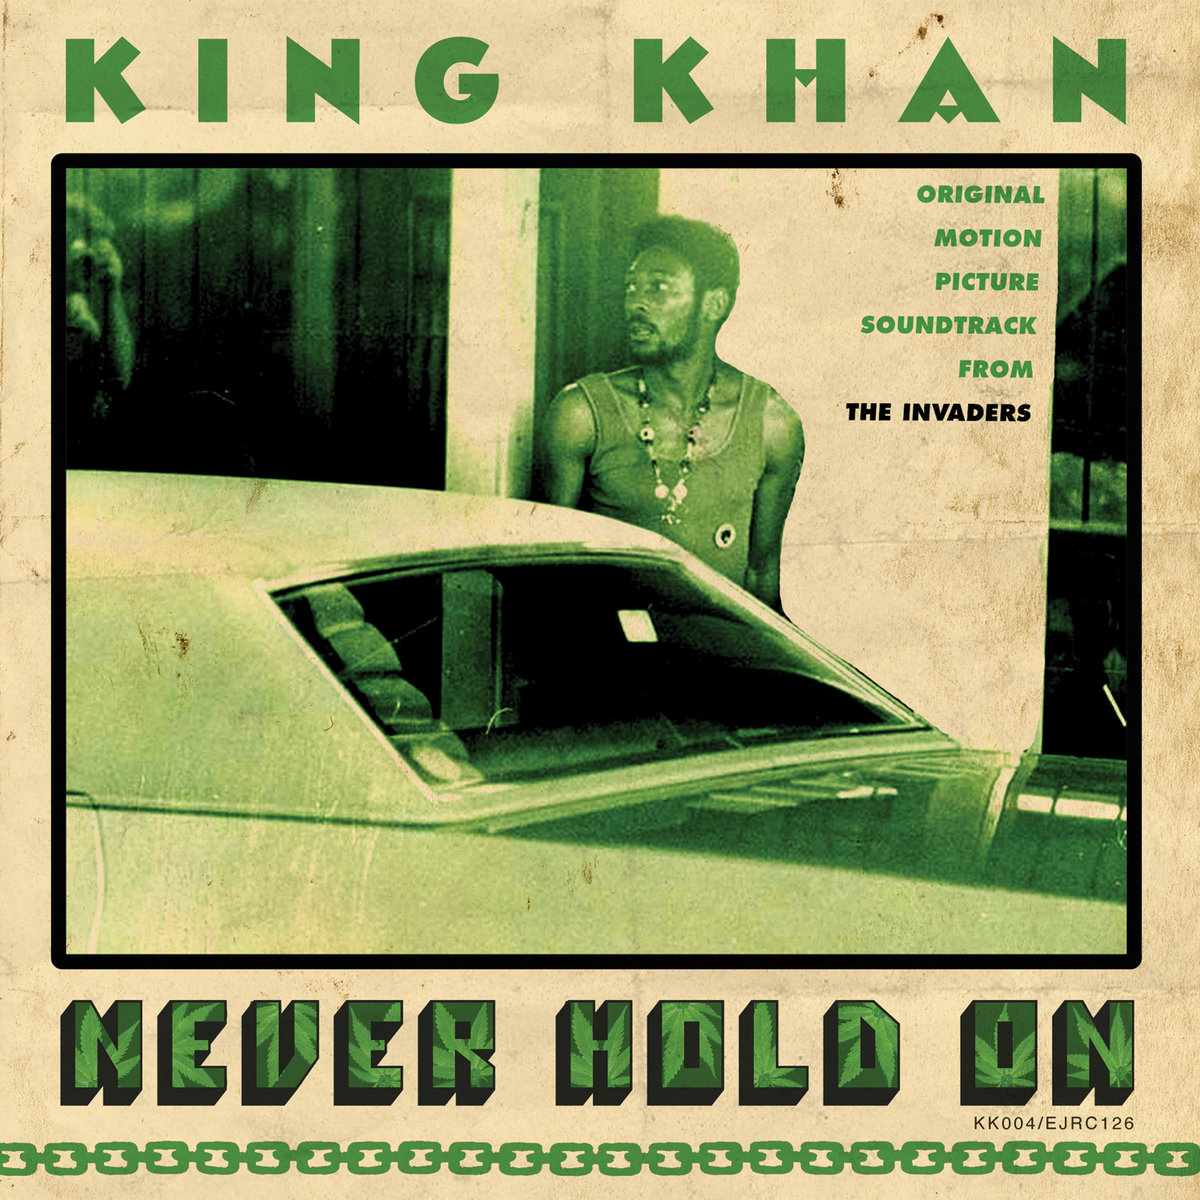 King Khan - Never Hold On b/w A Tree Not A Leaf Am I 7